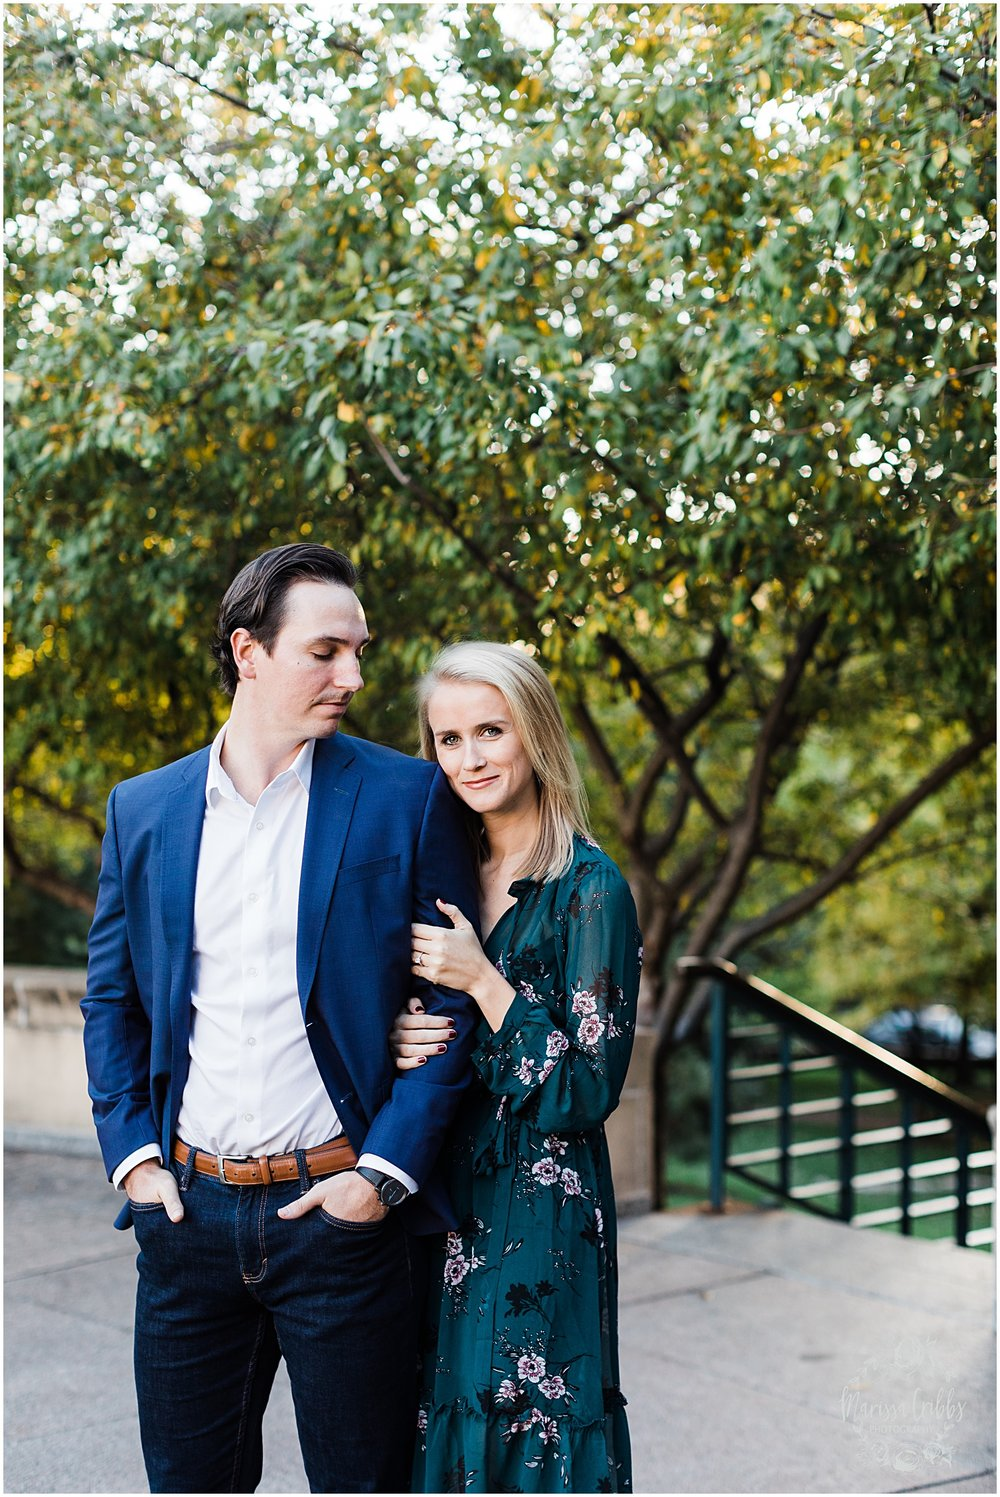 HALEY & CHASE ENGAGED LOOSE PARK & NELSON ATKINS | FALL ENGAGEMENT PHOTOS | MARISSA CRIBBS PHOTOGRAPHY_6864.jpg